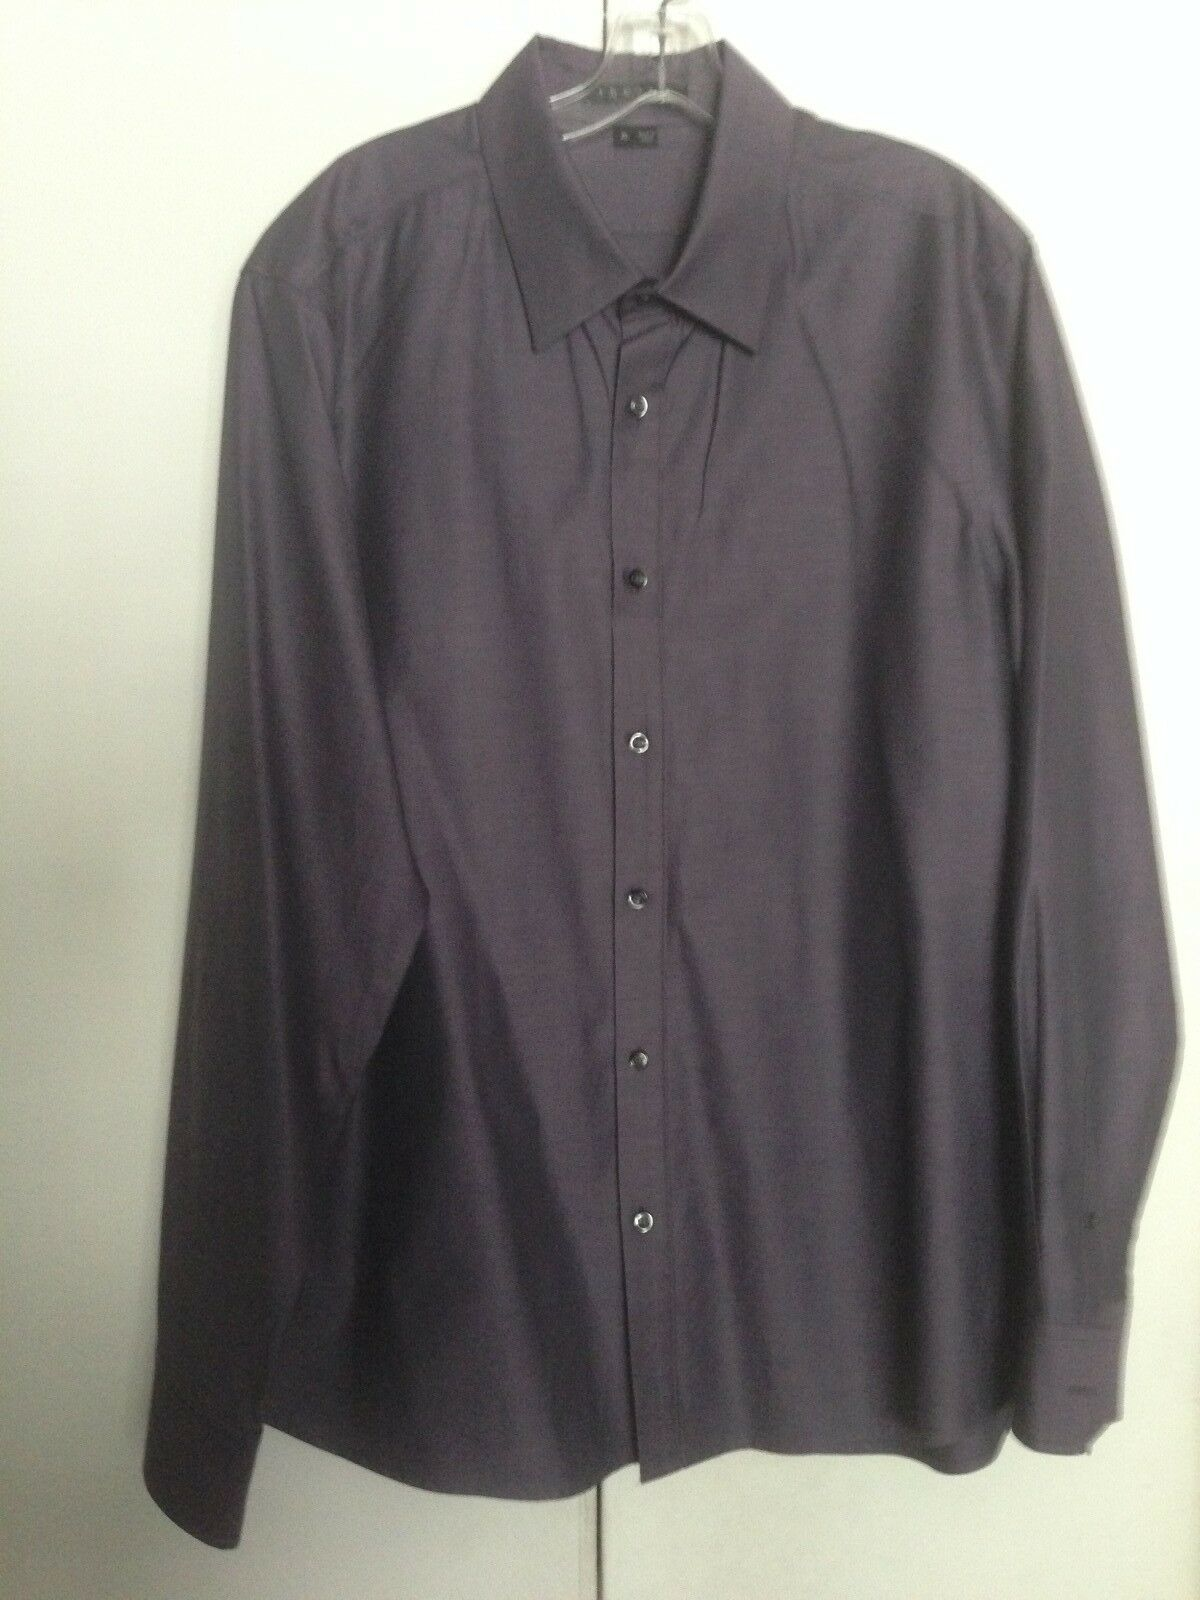 THEORY MENS KALE WP BUTTON FRONT LONG SLEEVE SHIRT US SIZE XL